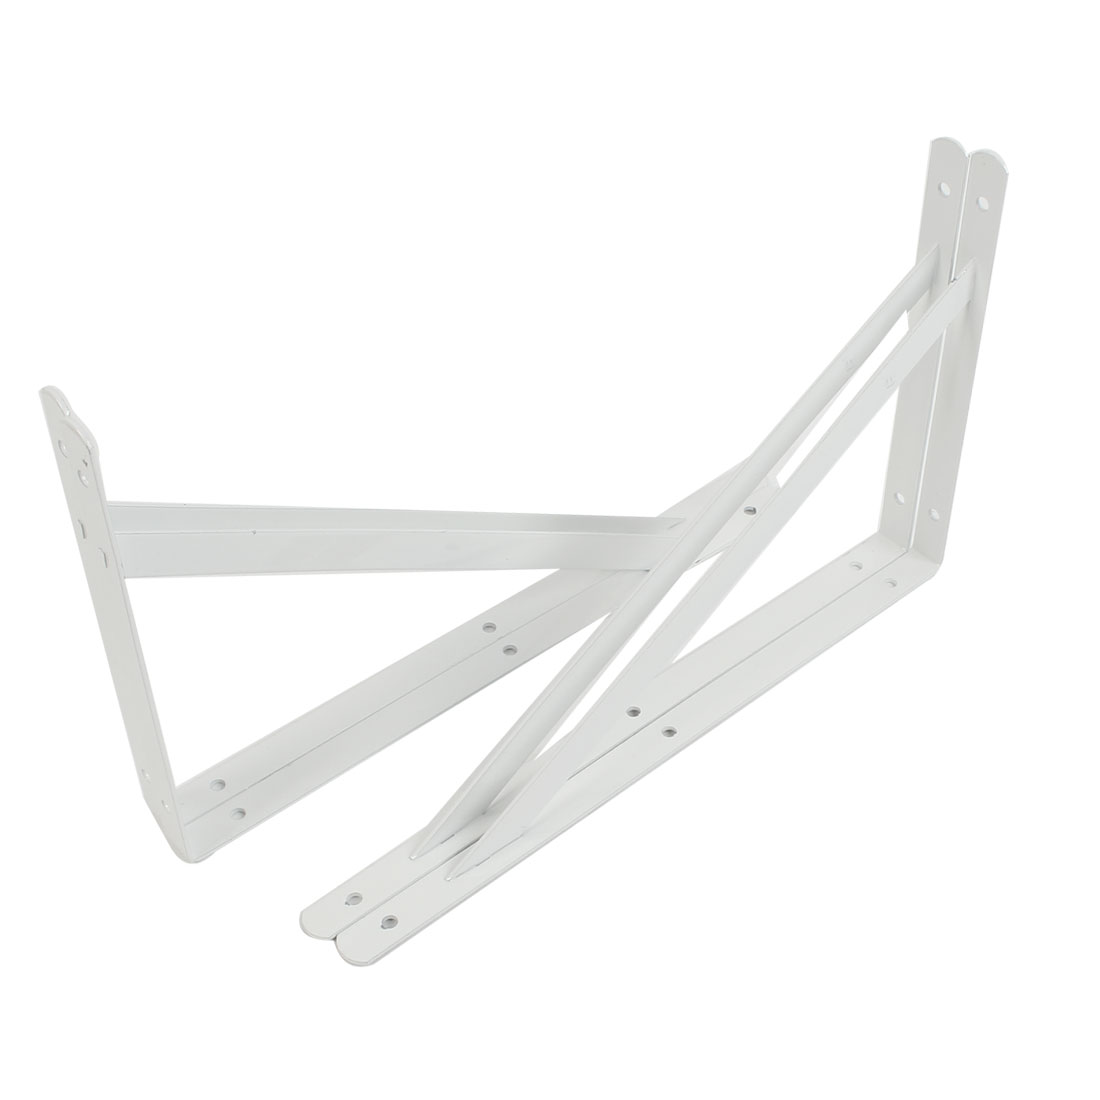 4 Pcs White 90 Degree Shop Store Wall Mounted Shelf Brackets 30cm x 19cm